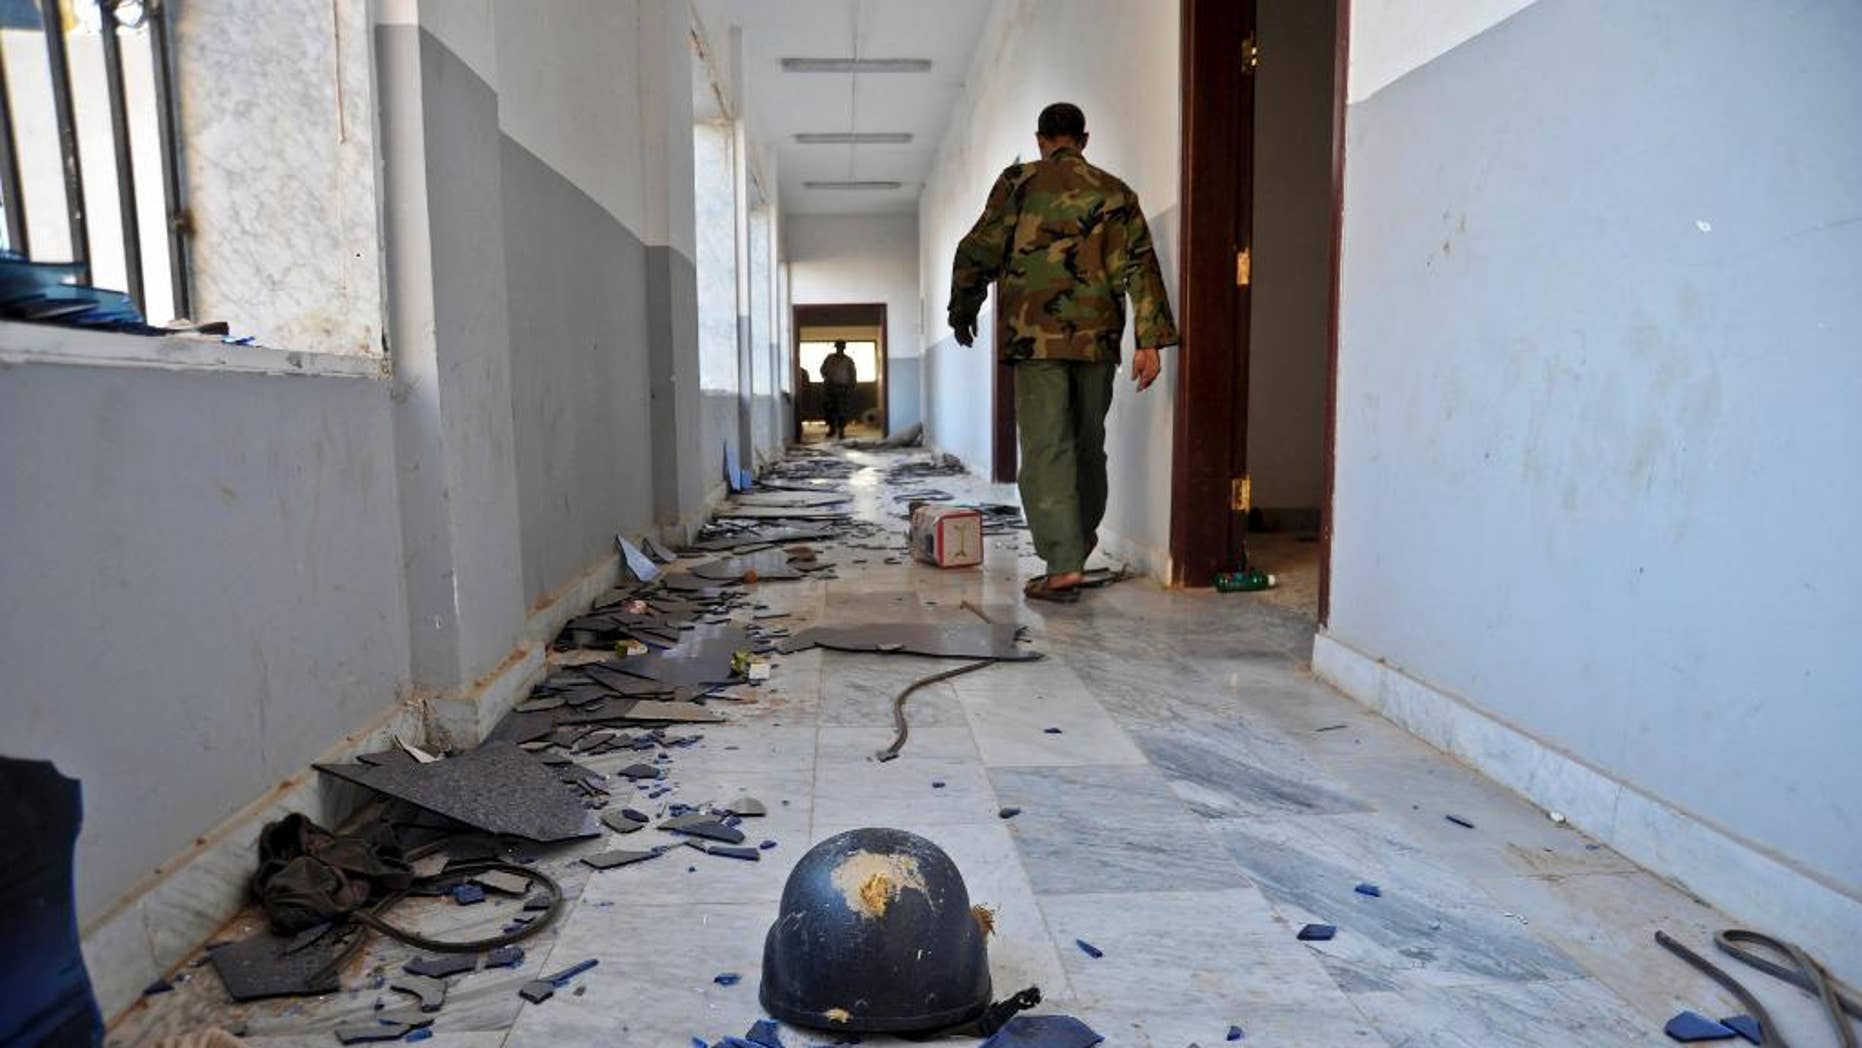 Nov. 3, 2014: In this photo, a Libyan military soldier walks past damages inside a building that was used by Islamic militias for fighting in Benghazi, Libya. (AP)